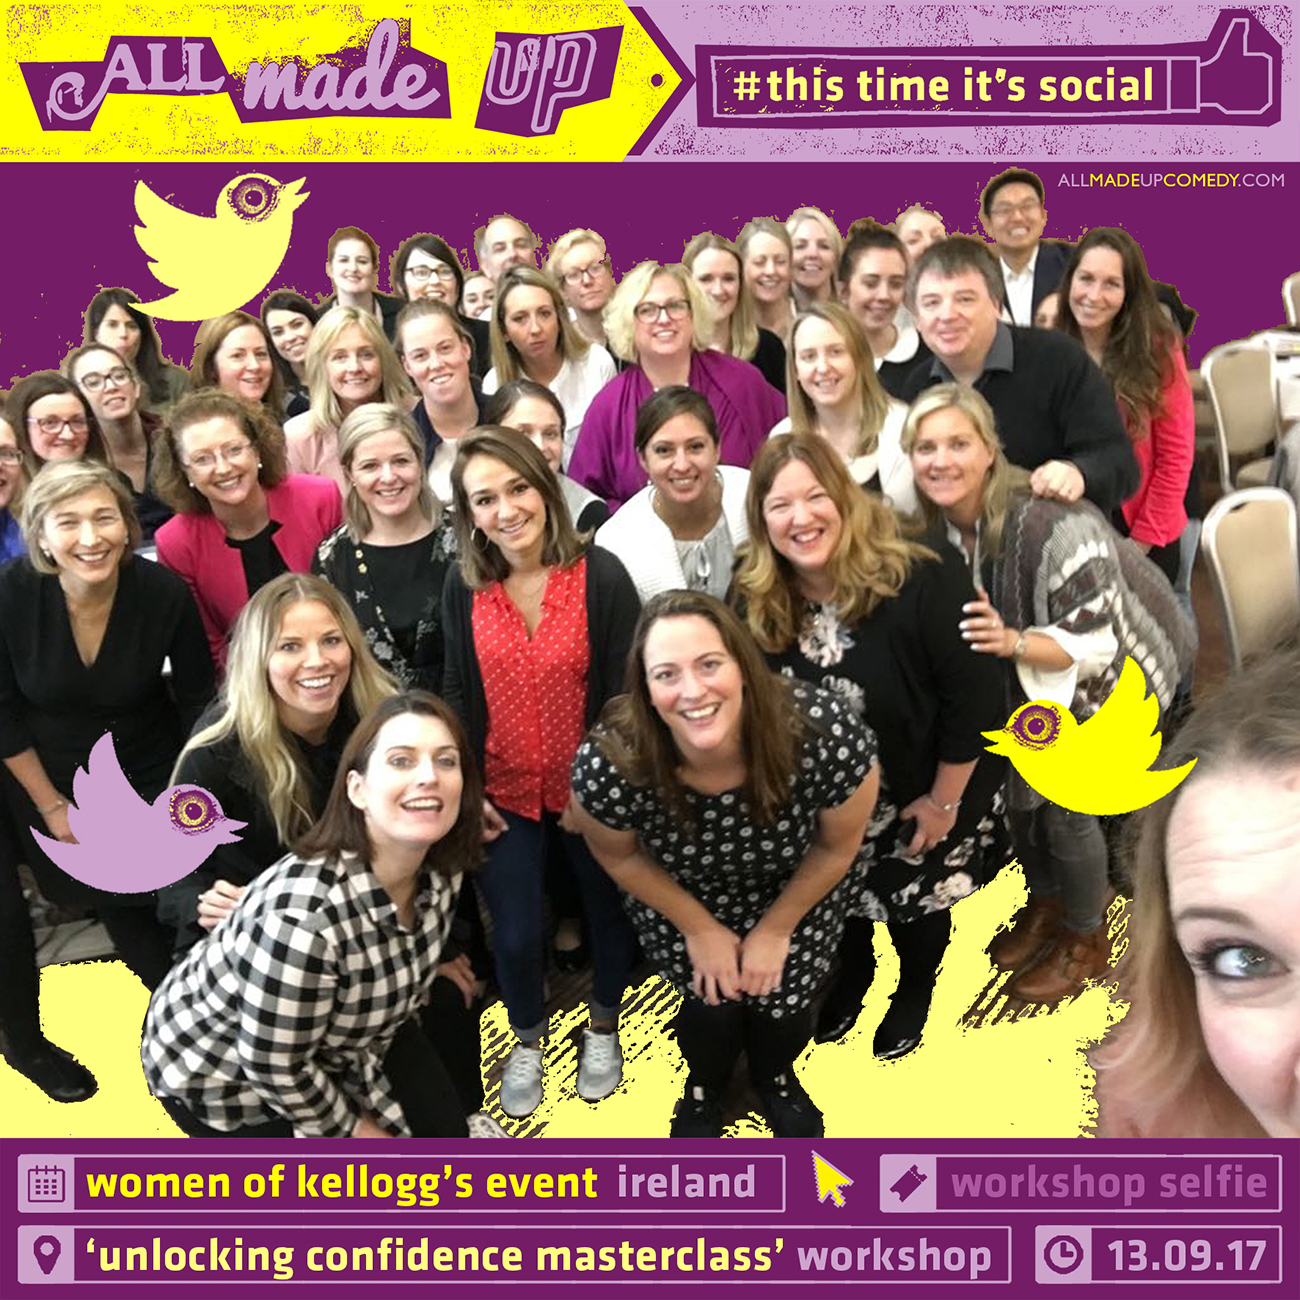 WORKSHOP SELFIE - WOMEN OF KELLOGG'S EVENT - 13.09.17 - V3 - RESIZED FOR WEBSITE.jpg